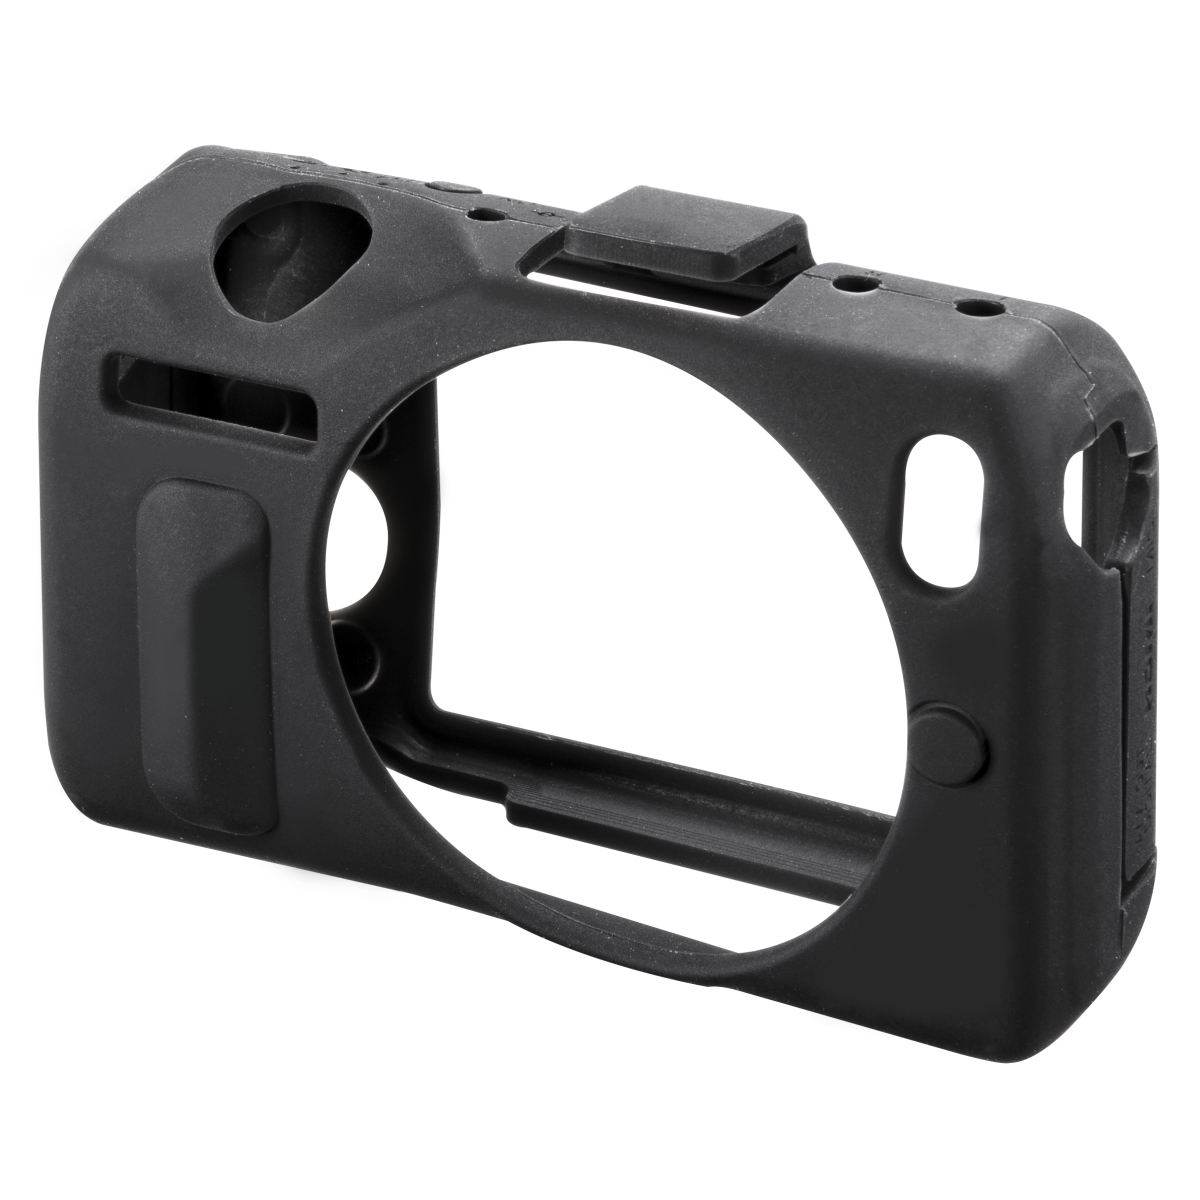 Walimex pro easyCover for Canon EOS M